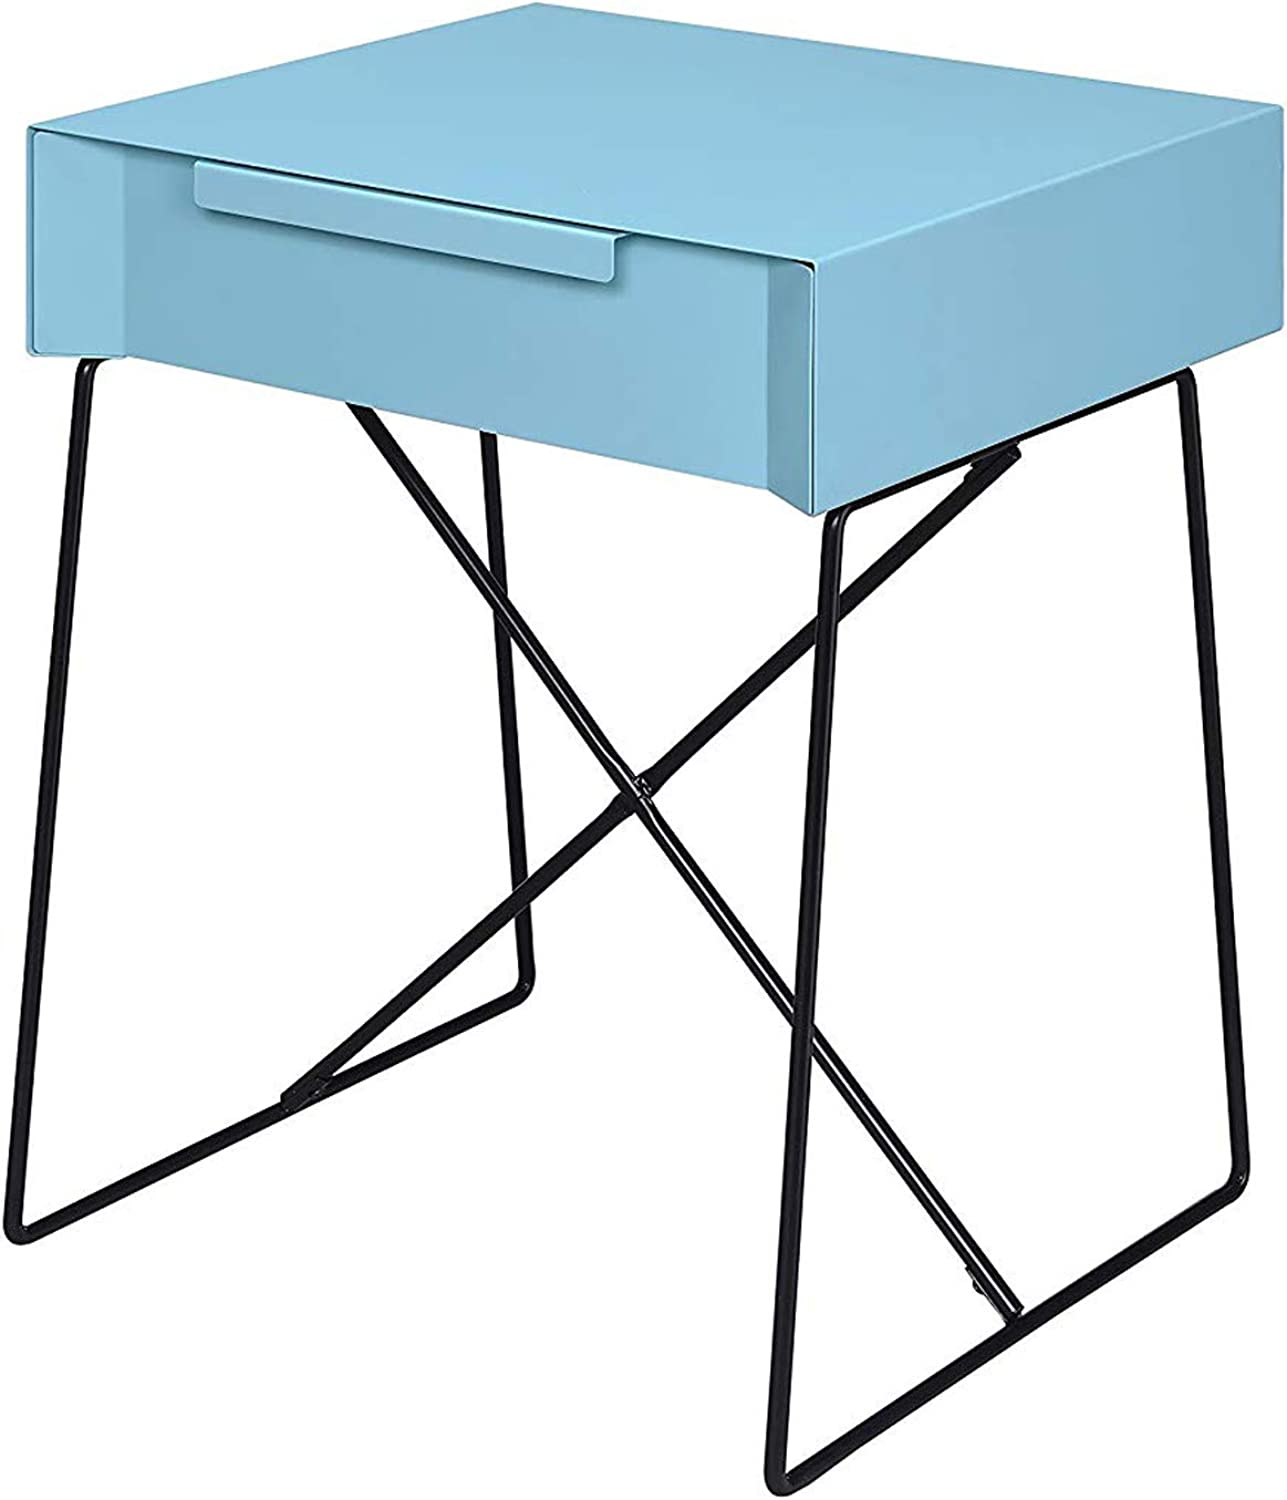 Benzara BM154614 Gualacao End Table Light bluee